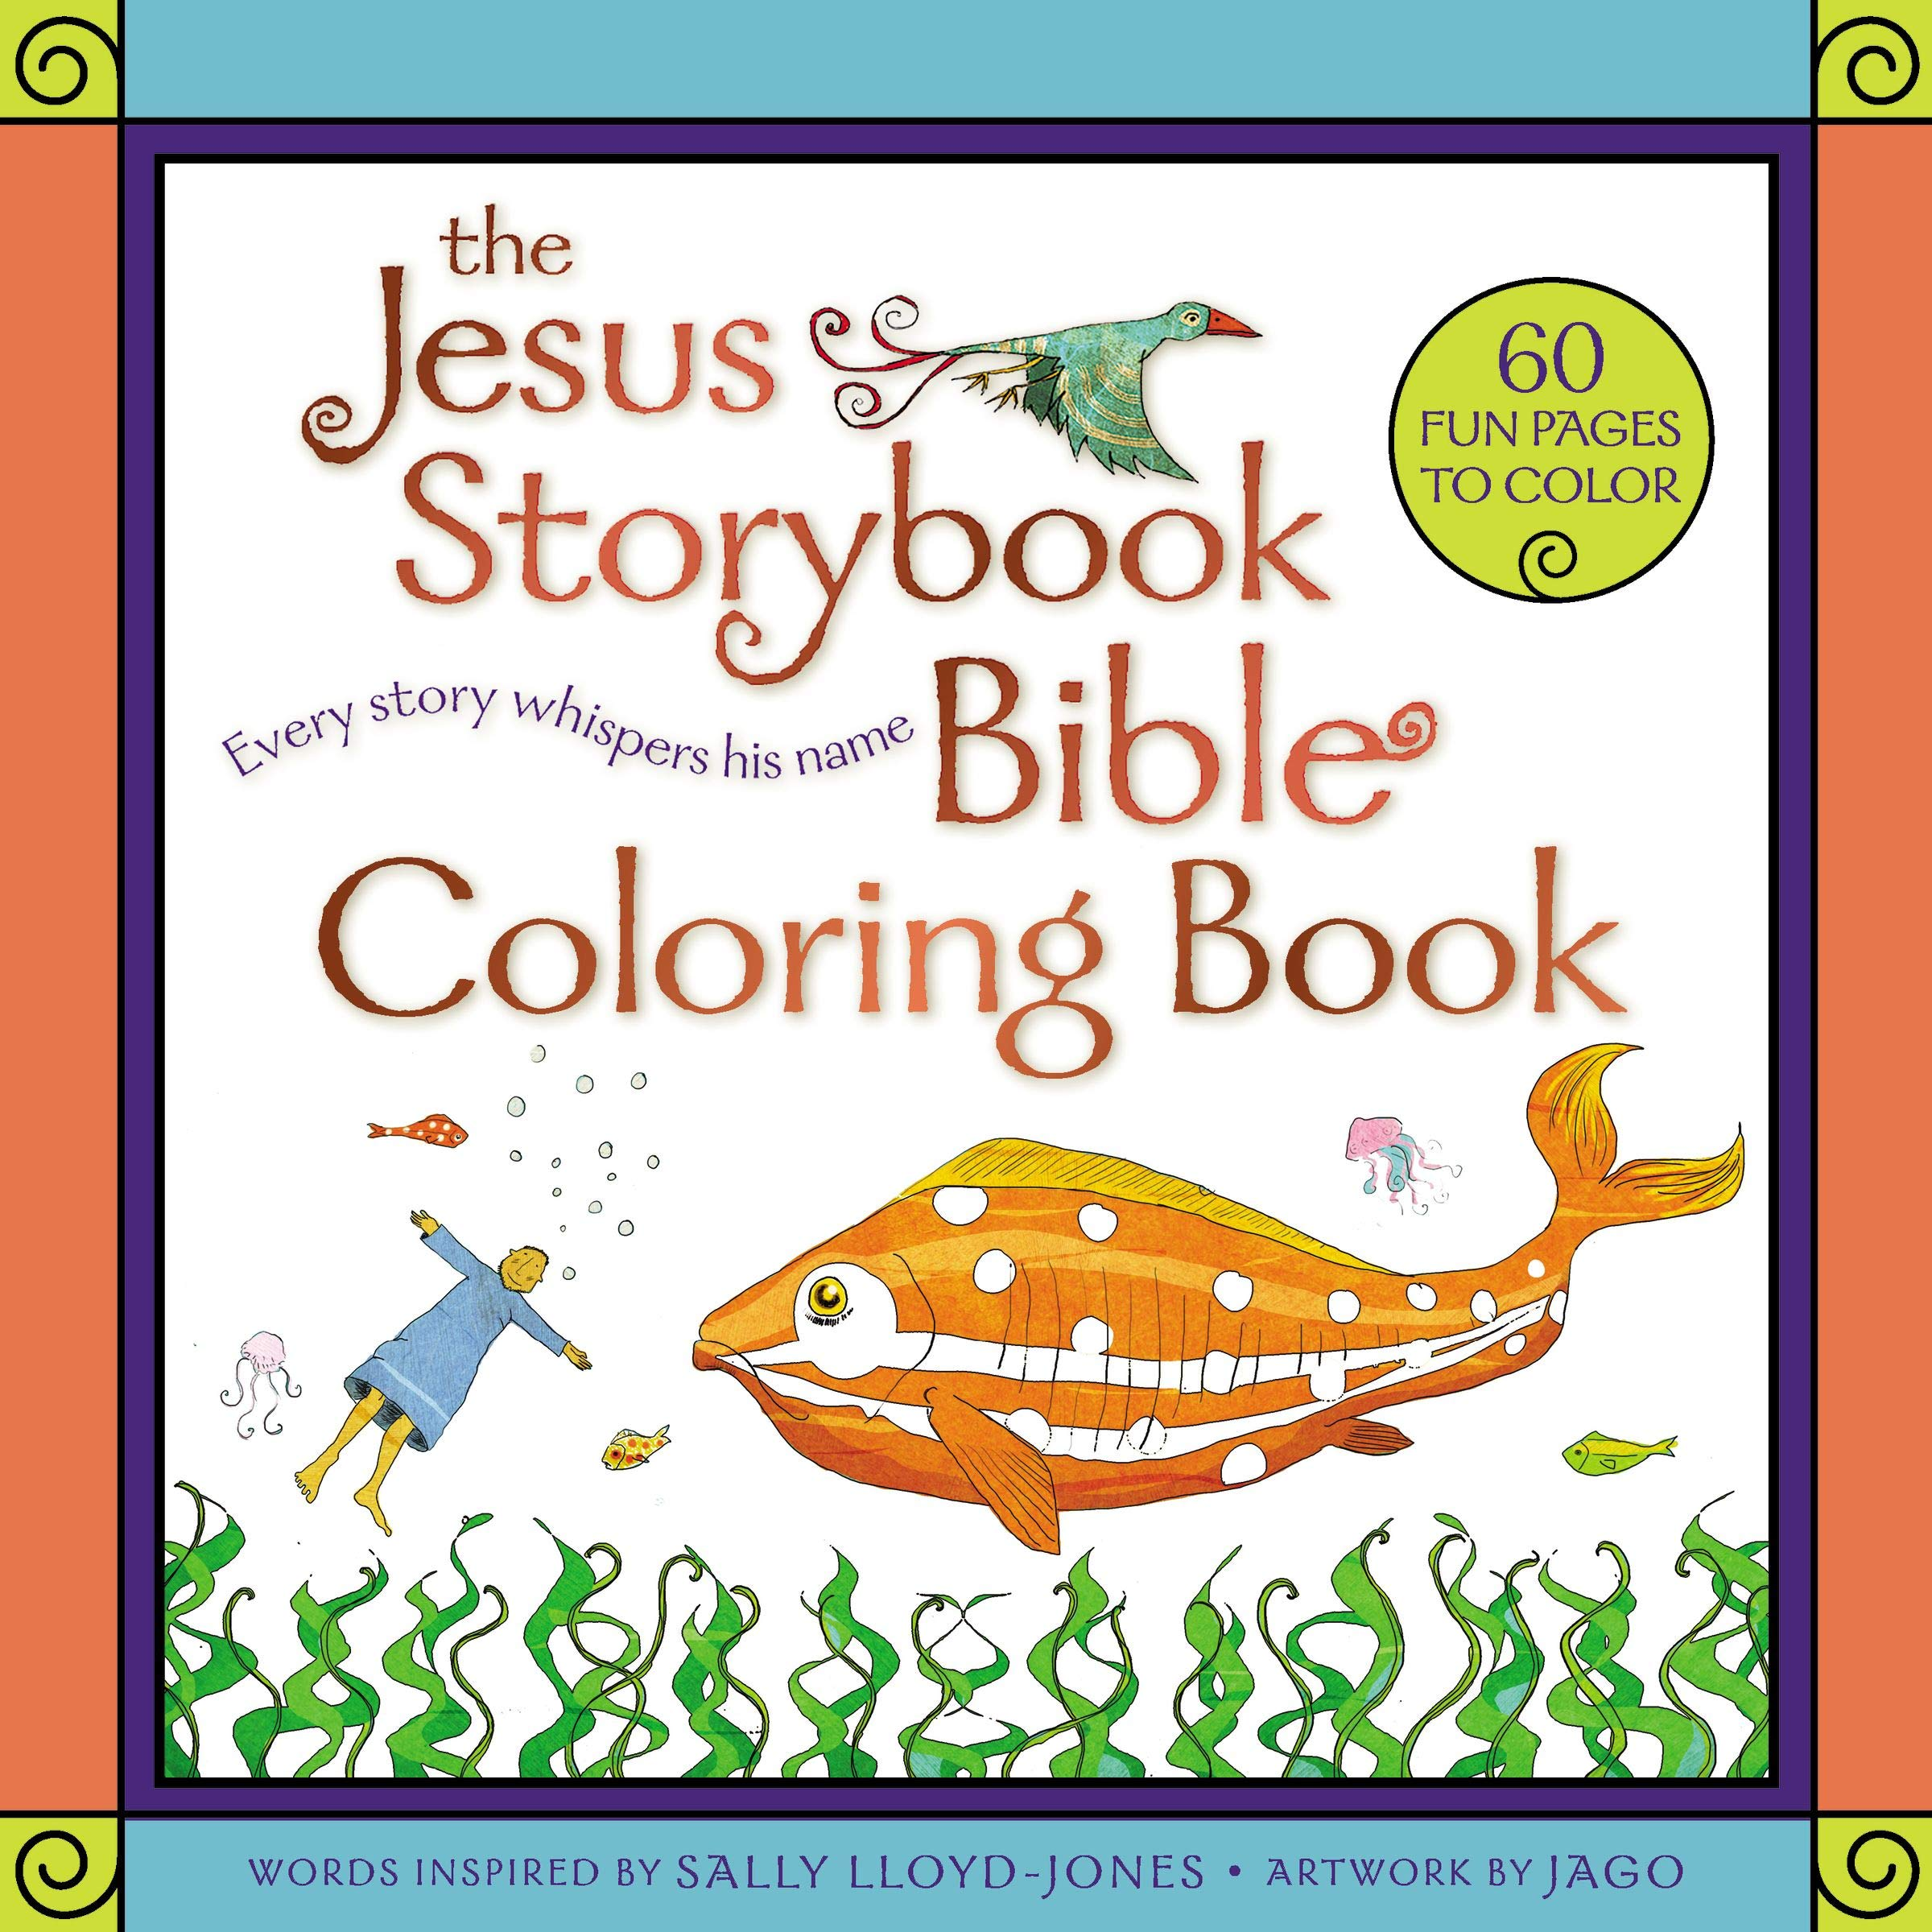 The Jesus Storybook Bible Coloring Book For Kids: Every Story